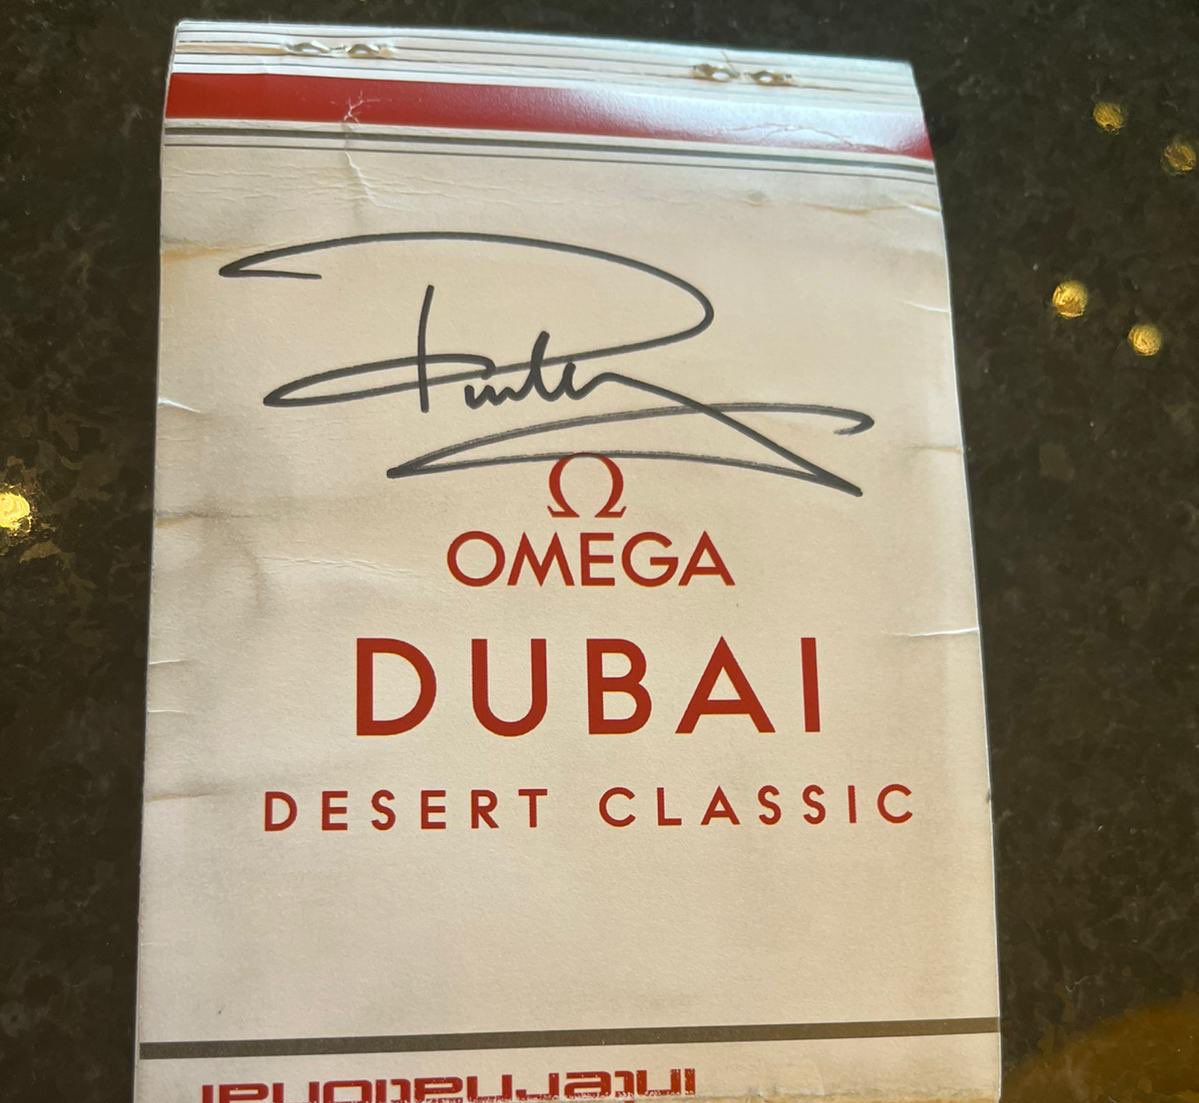 🚨 GIVEAWAY! 🚨  Win @Paul_Casey's signed caddie yardage book from his 2021 #ODDC win at @EmiratesGC with John McLaren.   ❤️ LIKE this tweet ♻️ RETWEET this post 📲 FOLLOW us @caddie_world   Winner announced 26/2/2021!